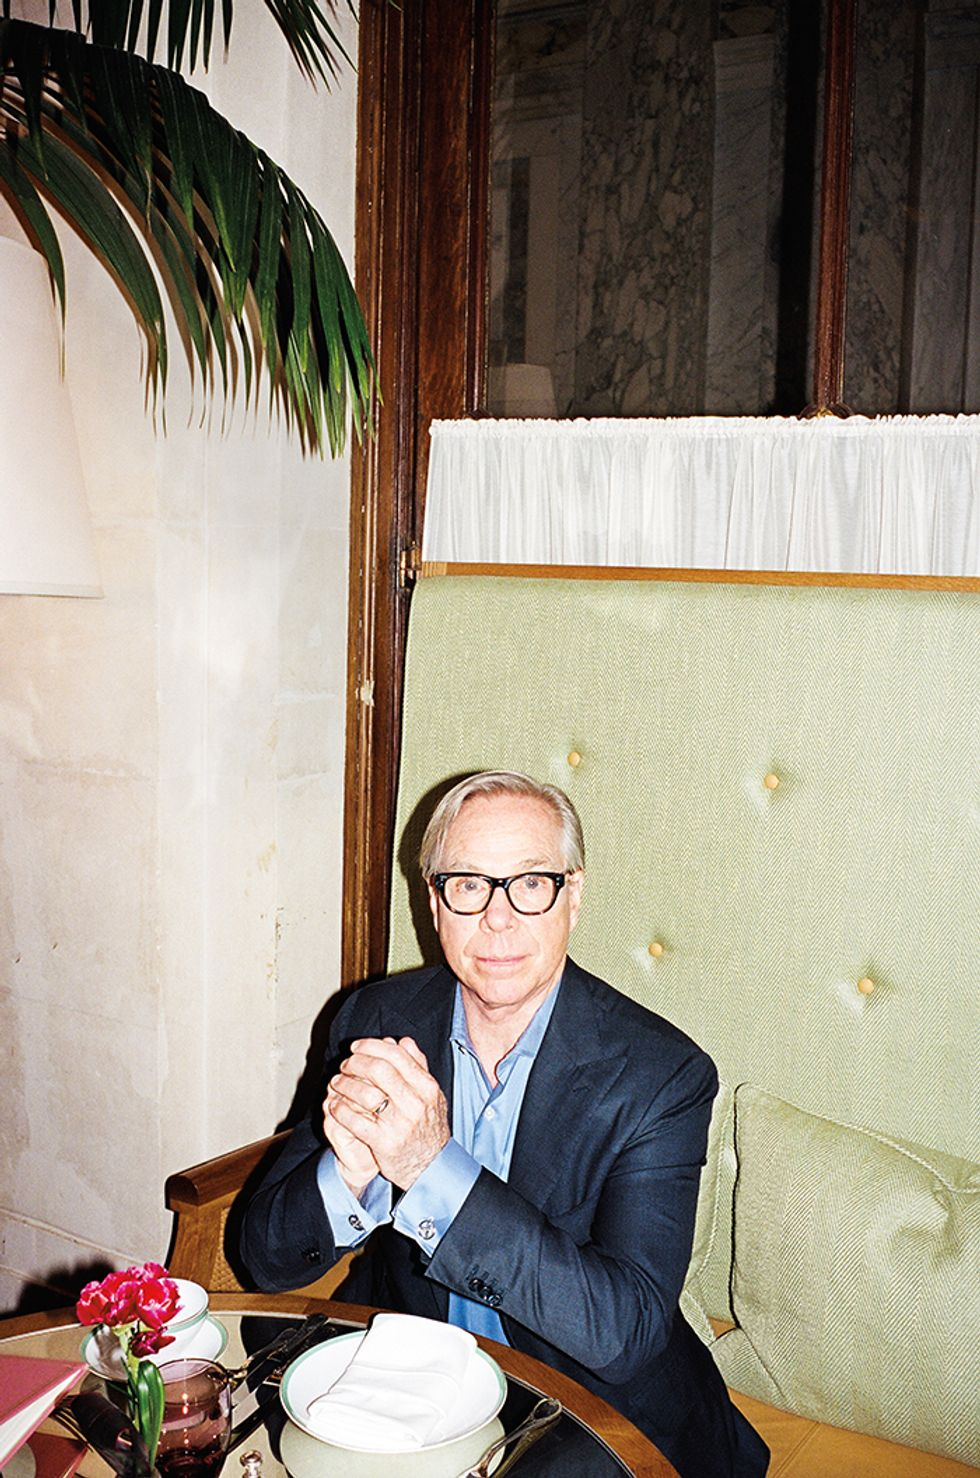 Tommy Hilfiger On His Punk Roots and Starting From the Bottom